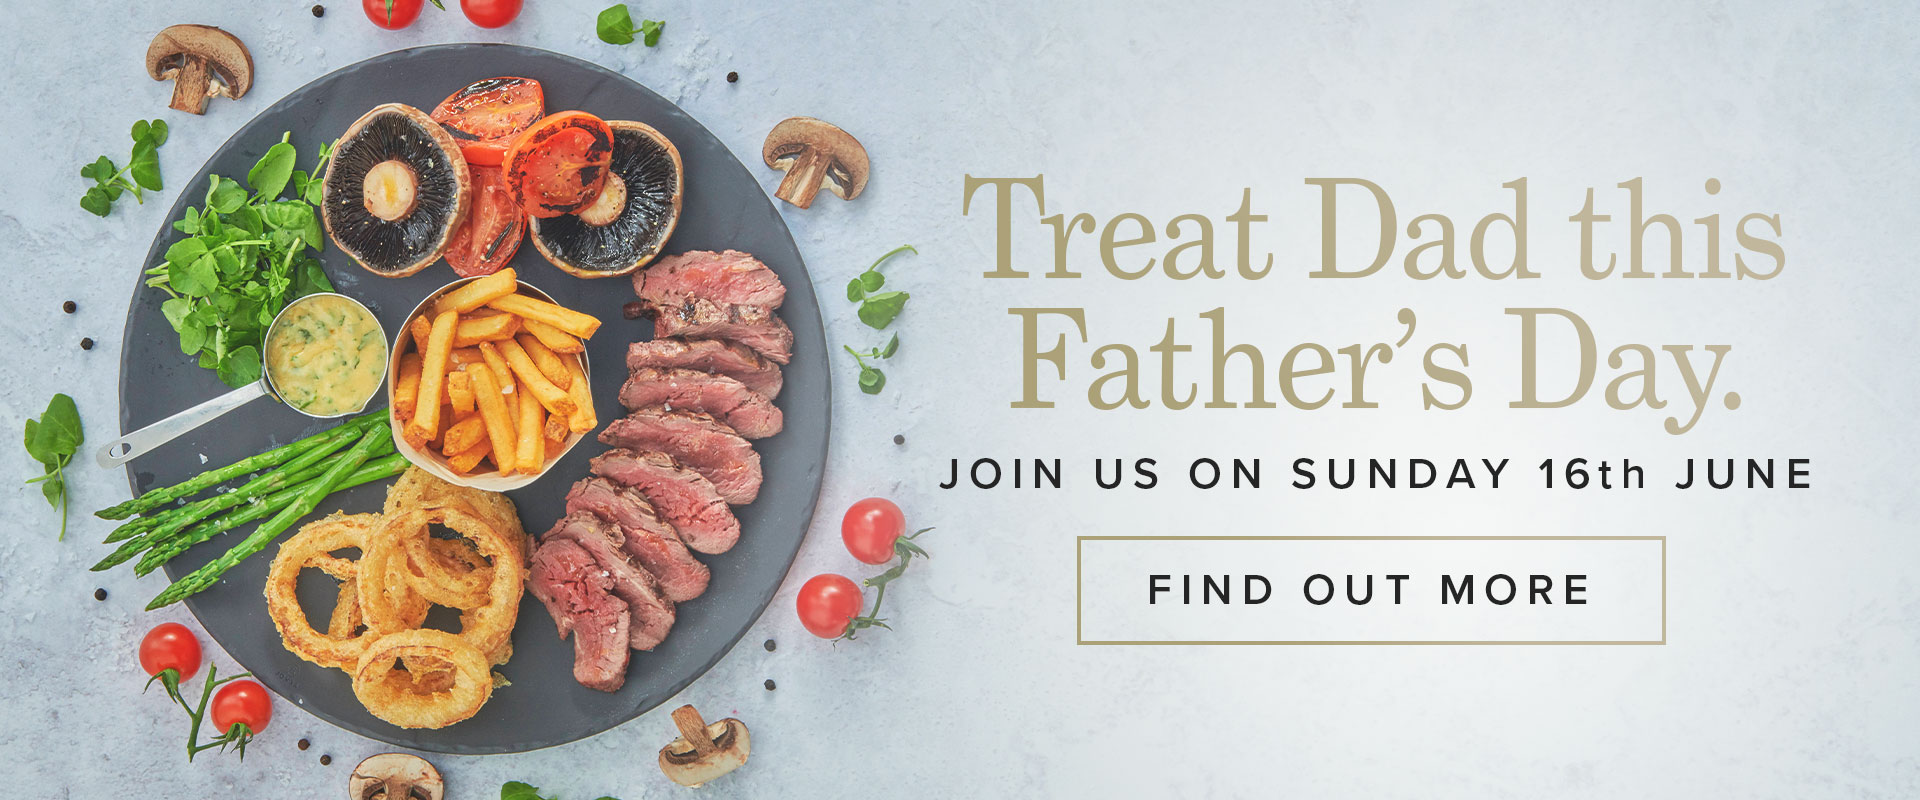 Father's Day at Browns Brighton